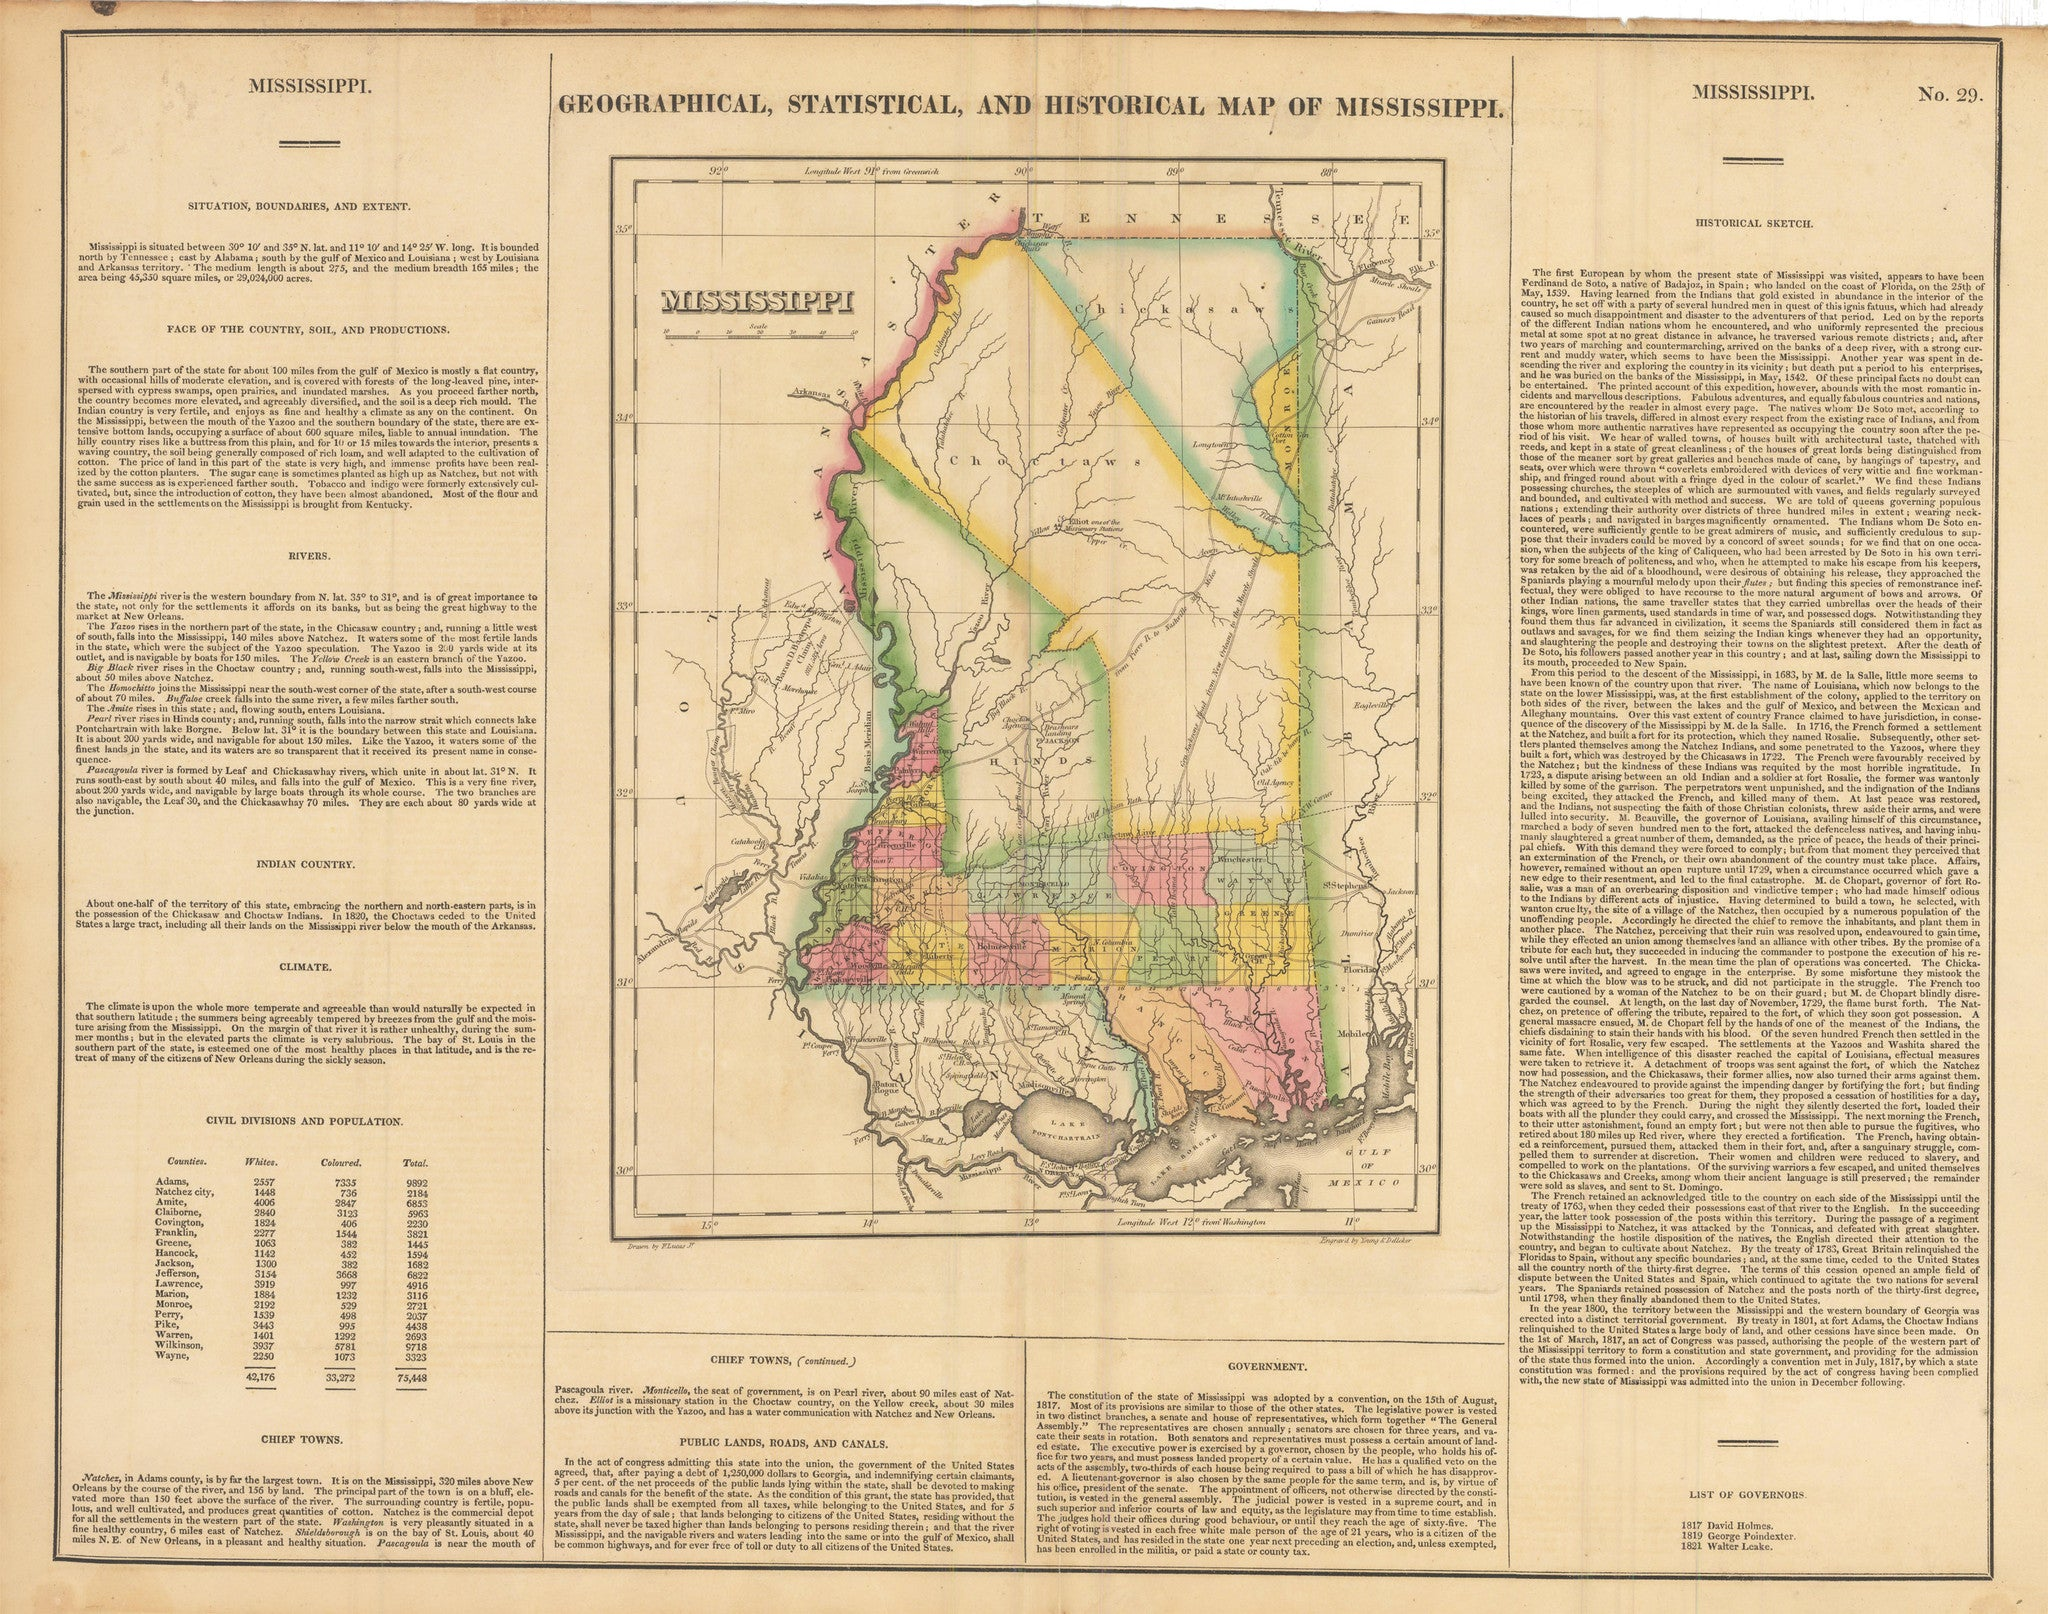 1822 Graphical, Statistical, and Historical Map of Mississippi